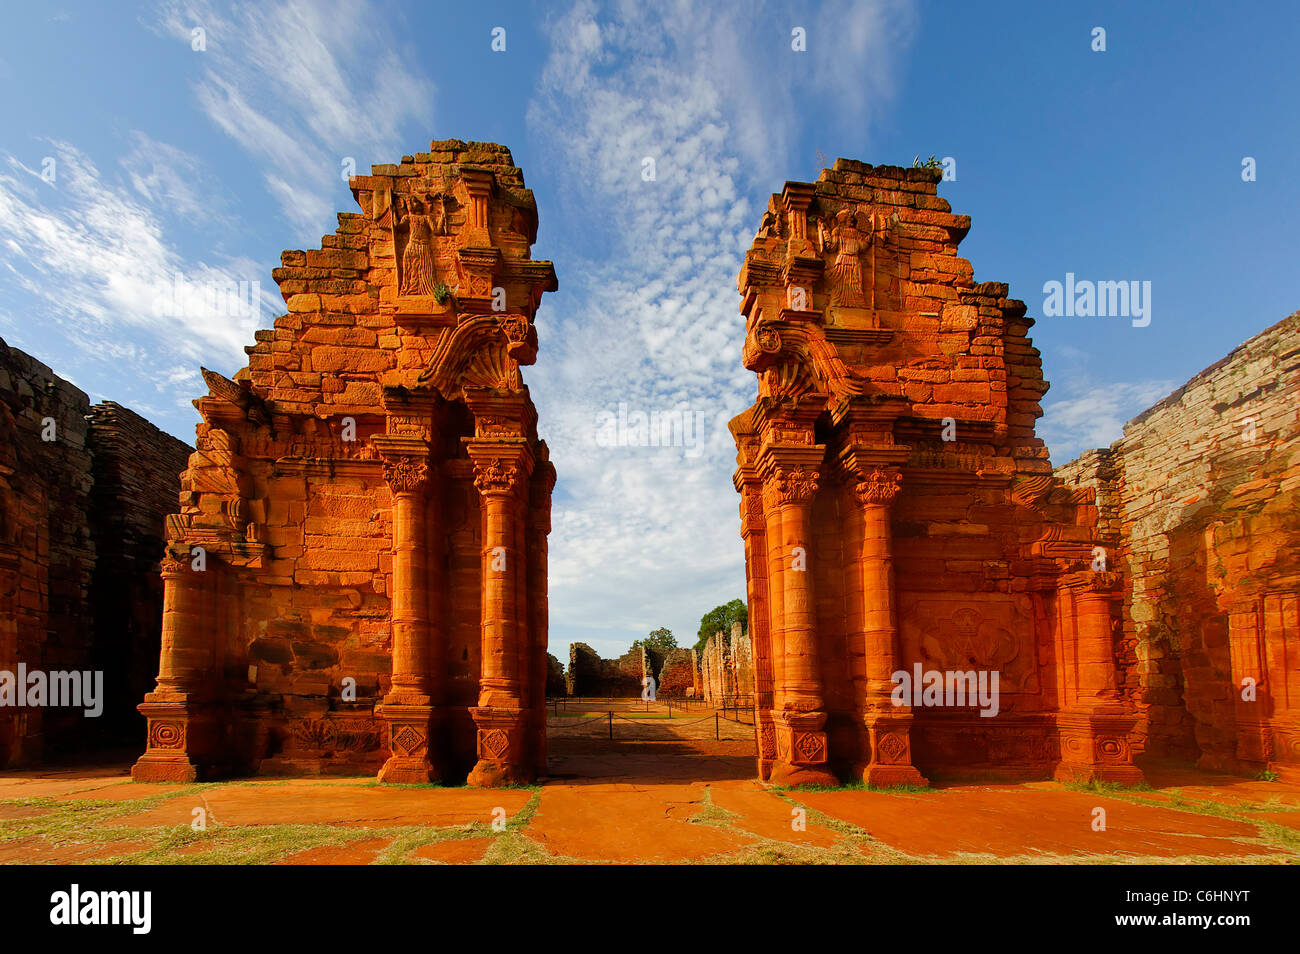 Ruins of the Jesuit reduction San Ignacio Mini, Church gate, Misiones Province, Argentina - Stock Image